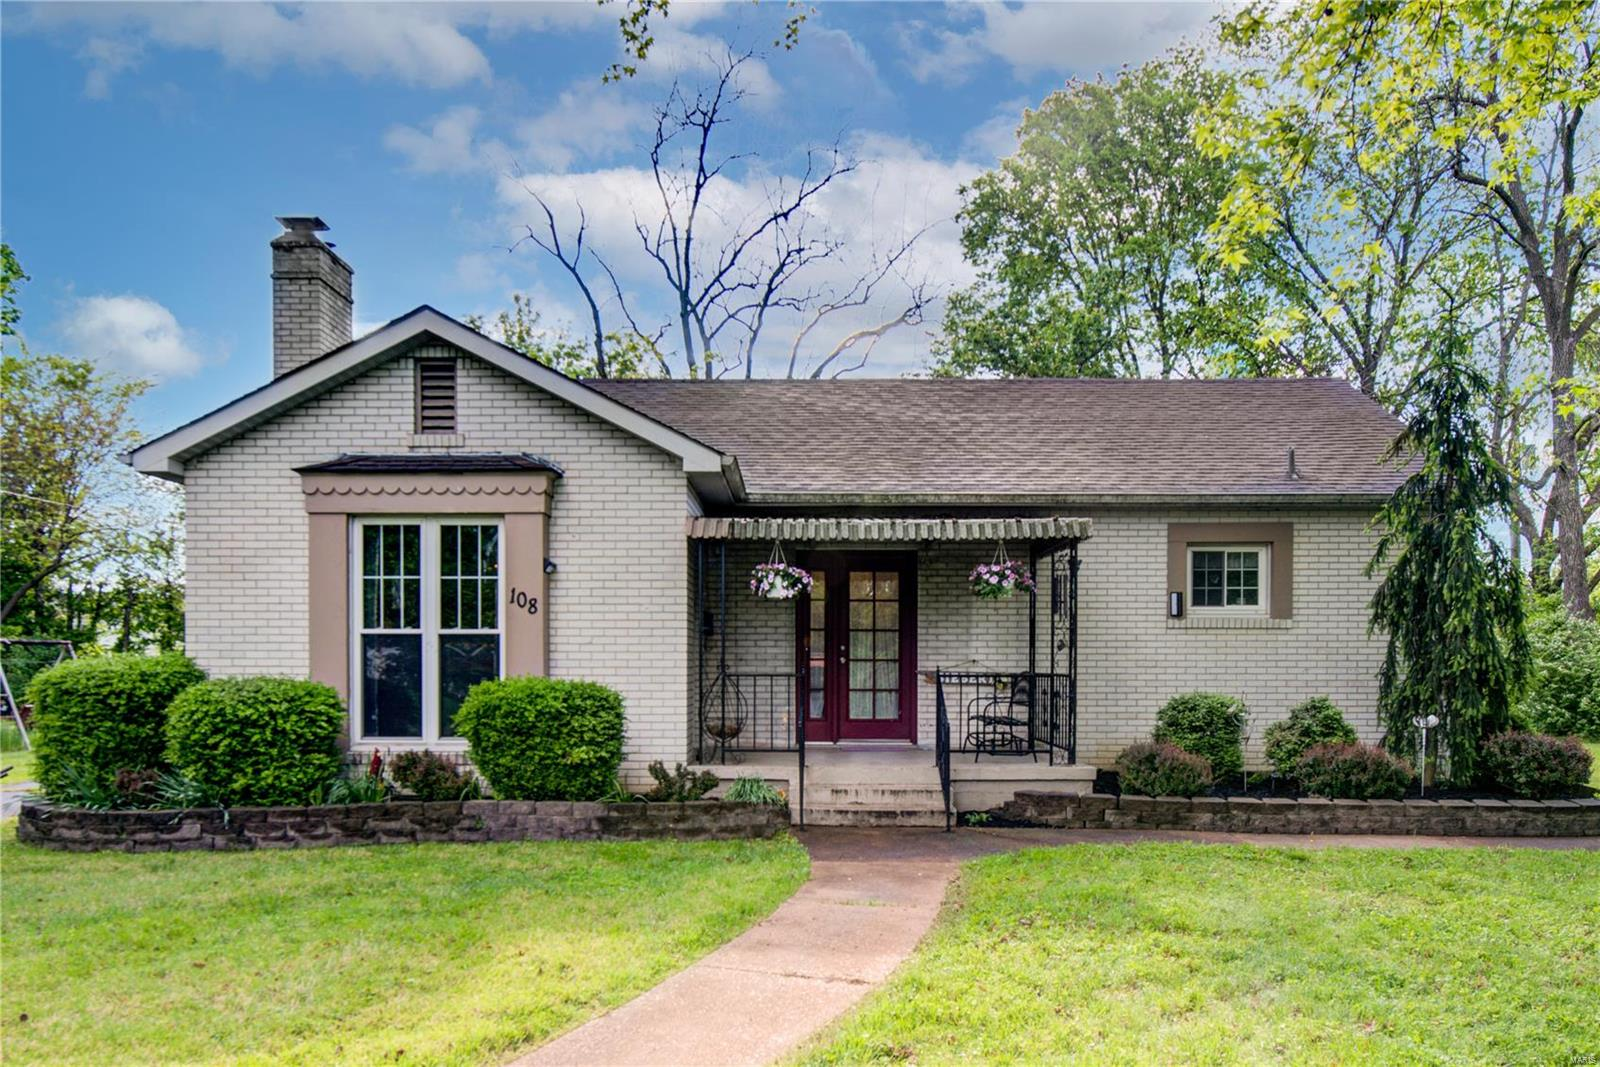 108 N Taylor Property Photo - Crystal City, MO real estate listing